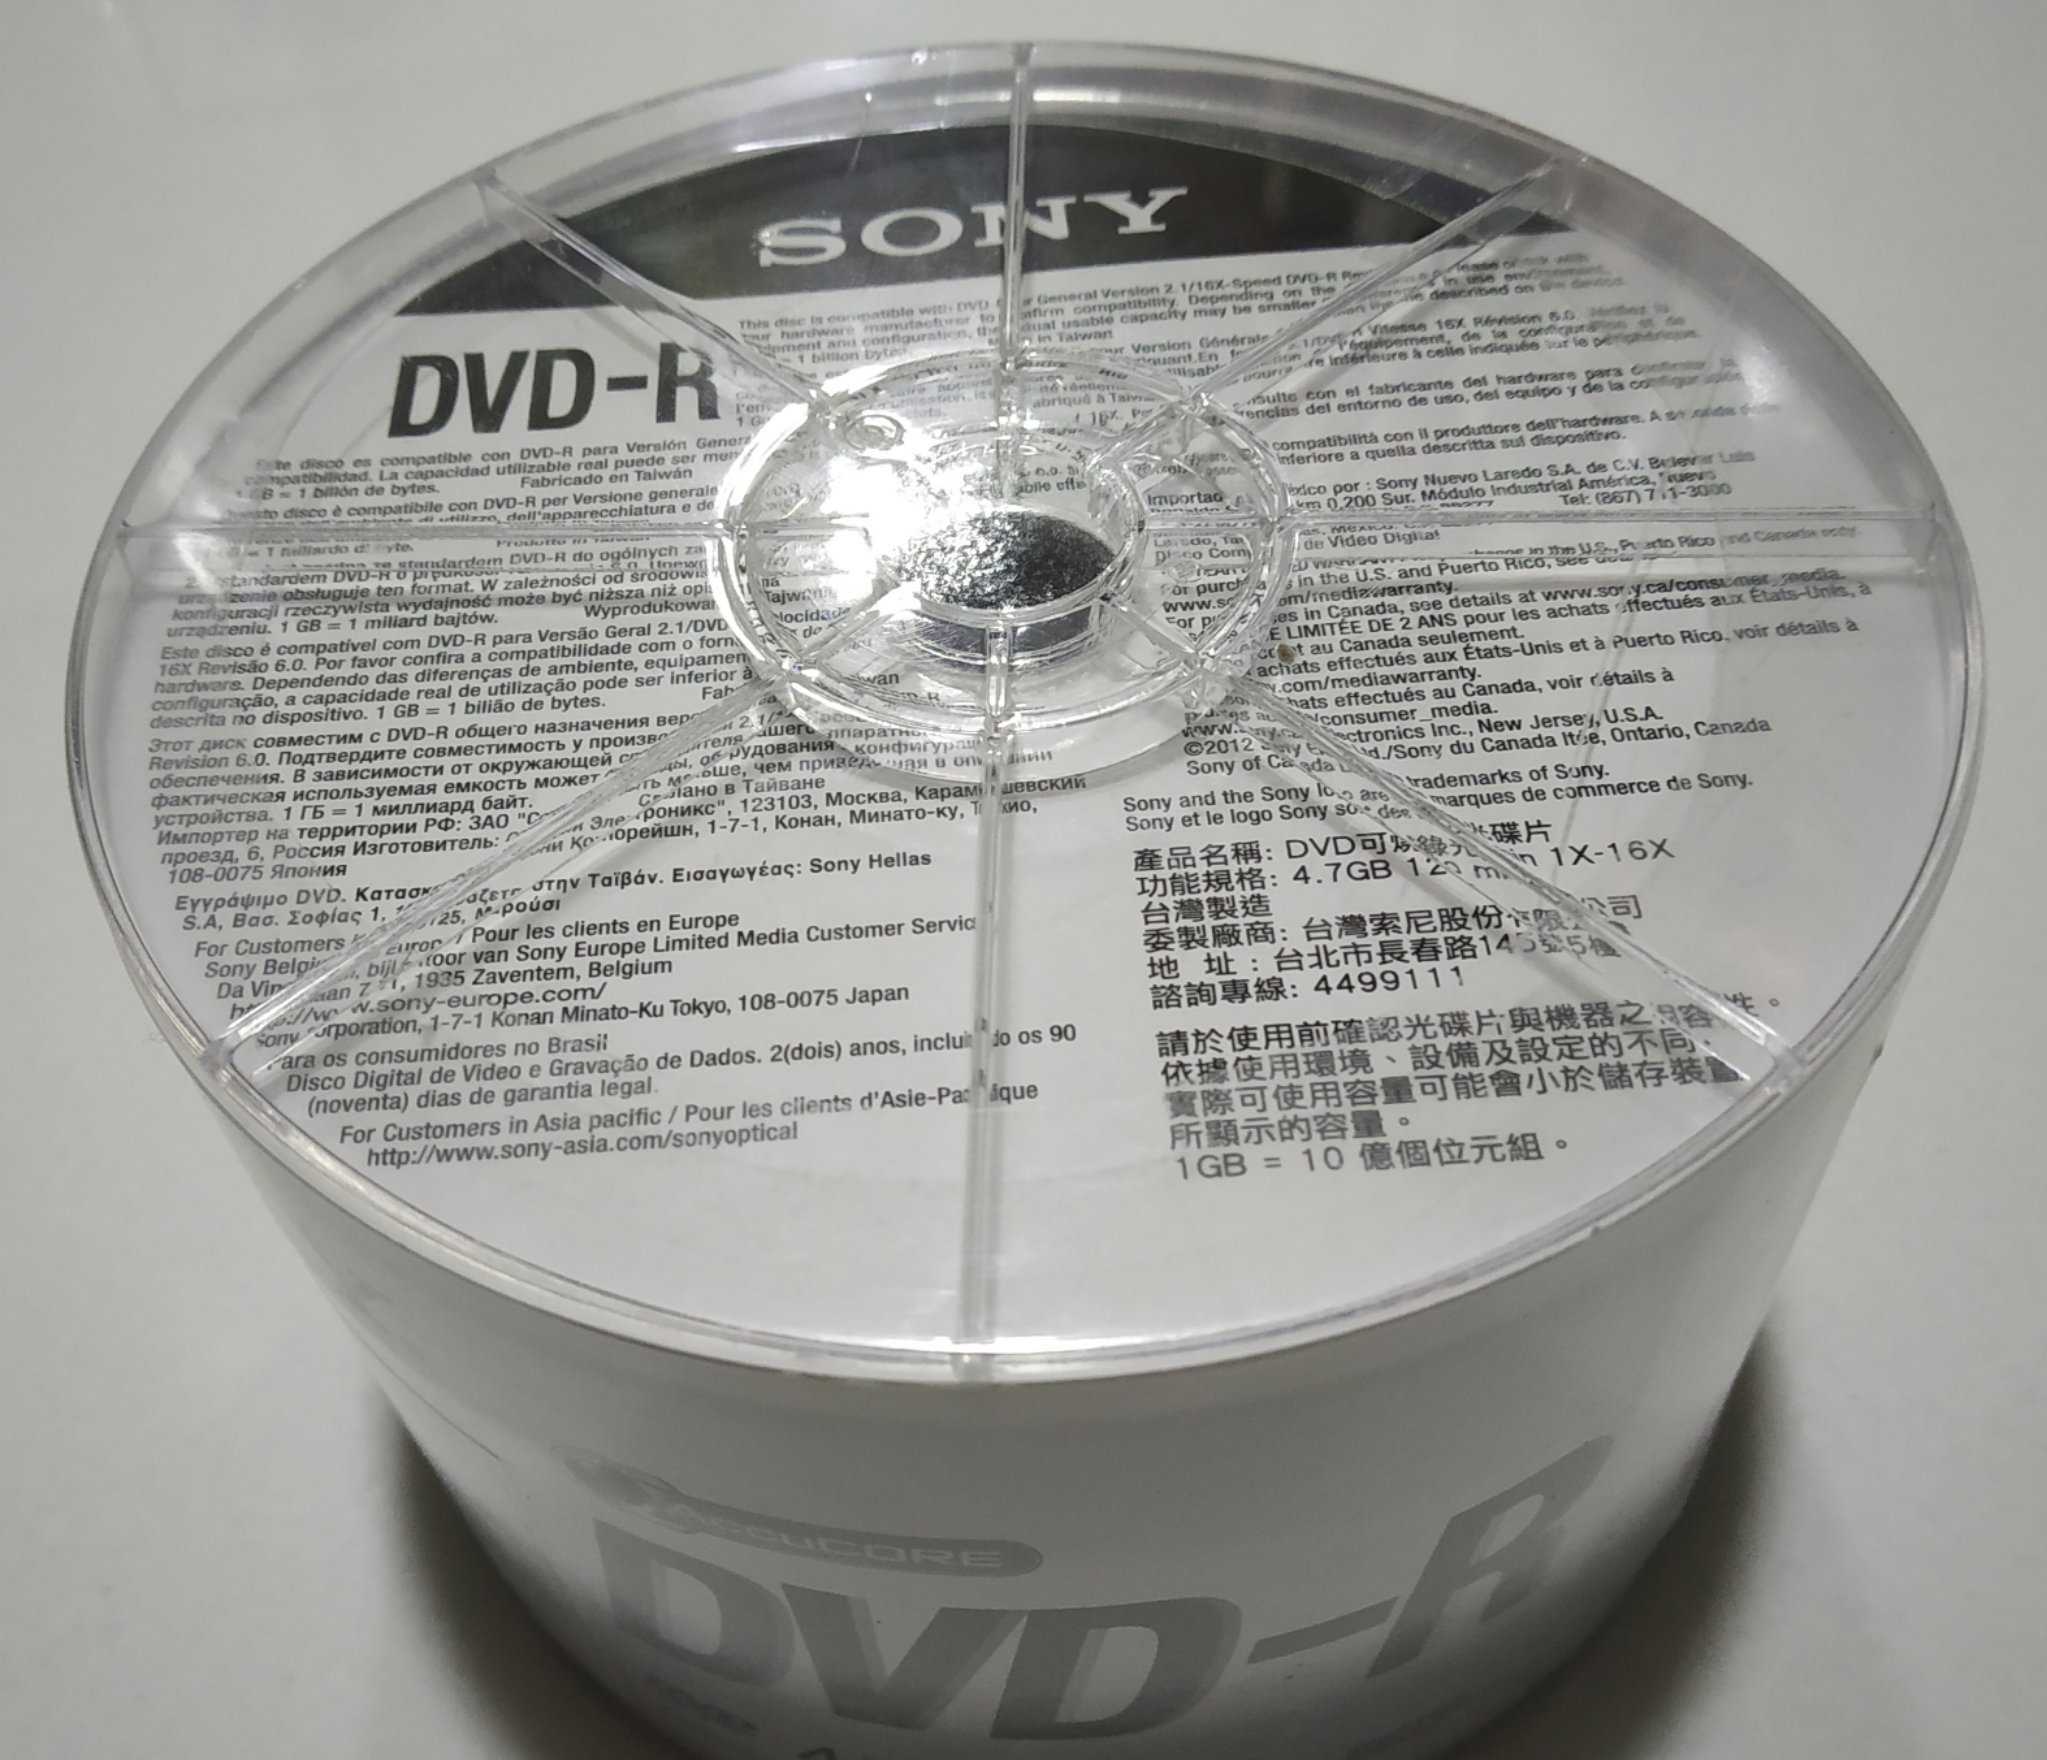 Sony DVD-R 4.7 GB Dvds, Pack of 50 disk 50DMR47MG/T5IN HSN:85234160